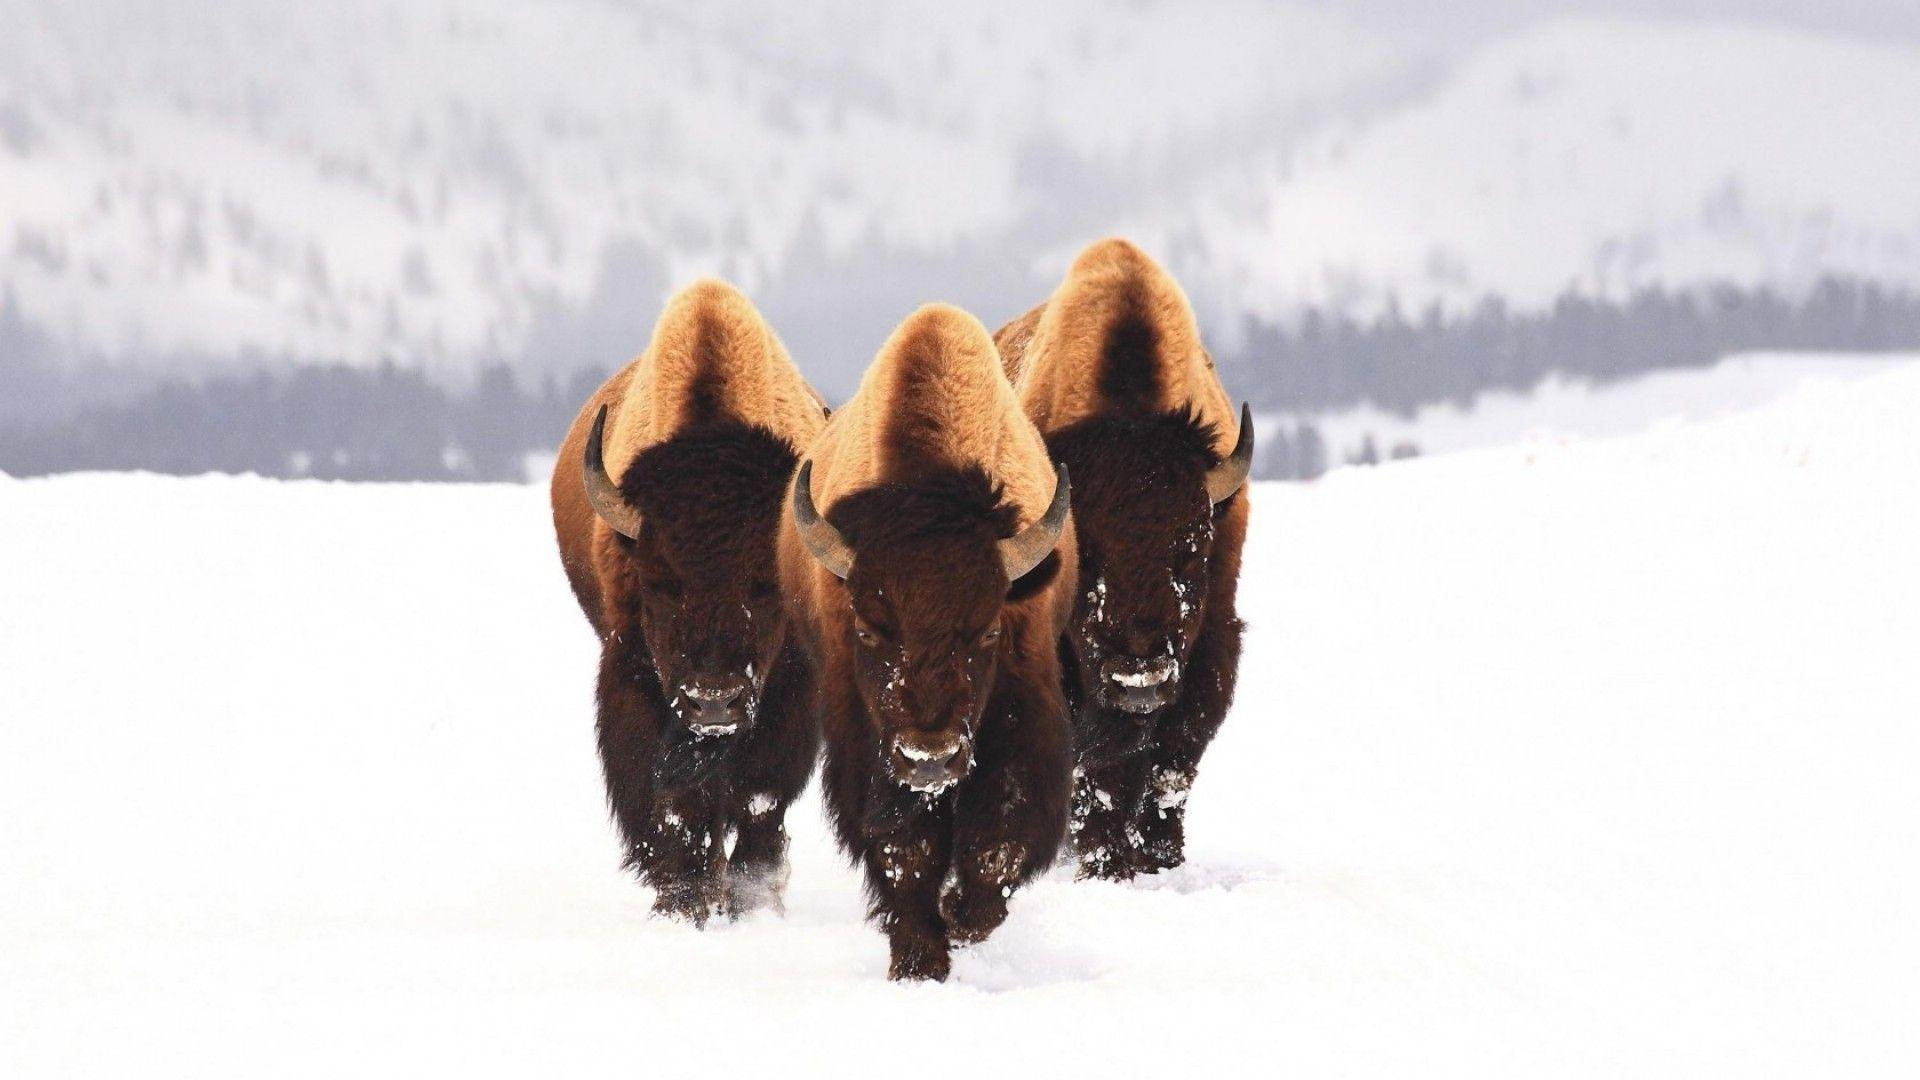 HD Wallpapers: 1920x1080 » Animals » bison snow animals winter